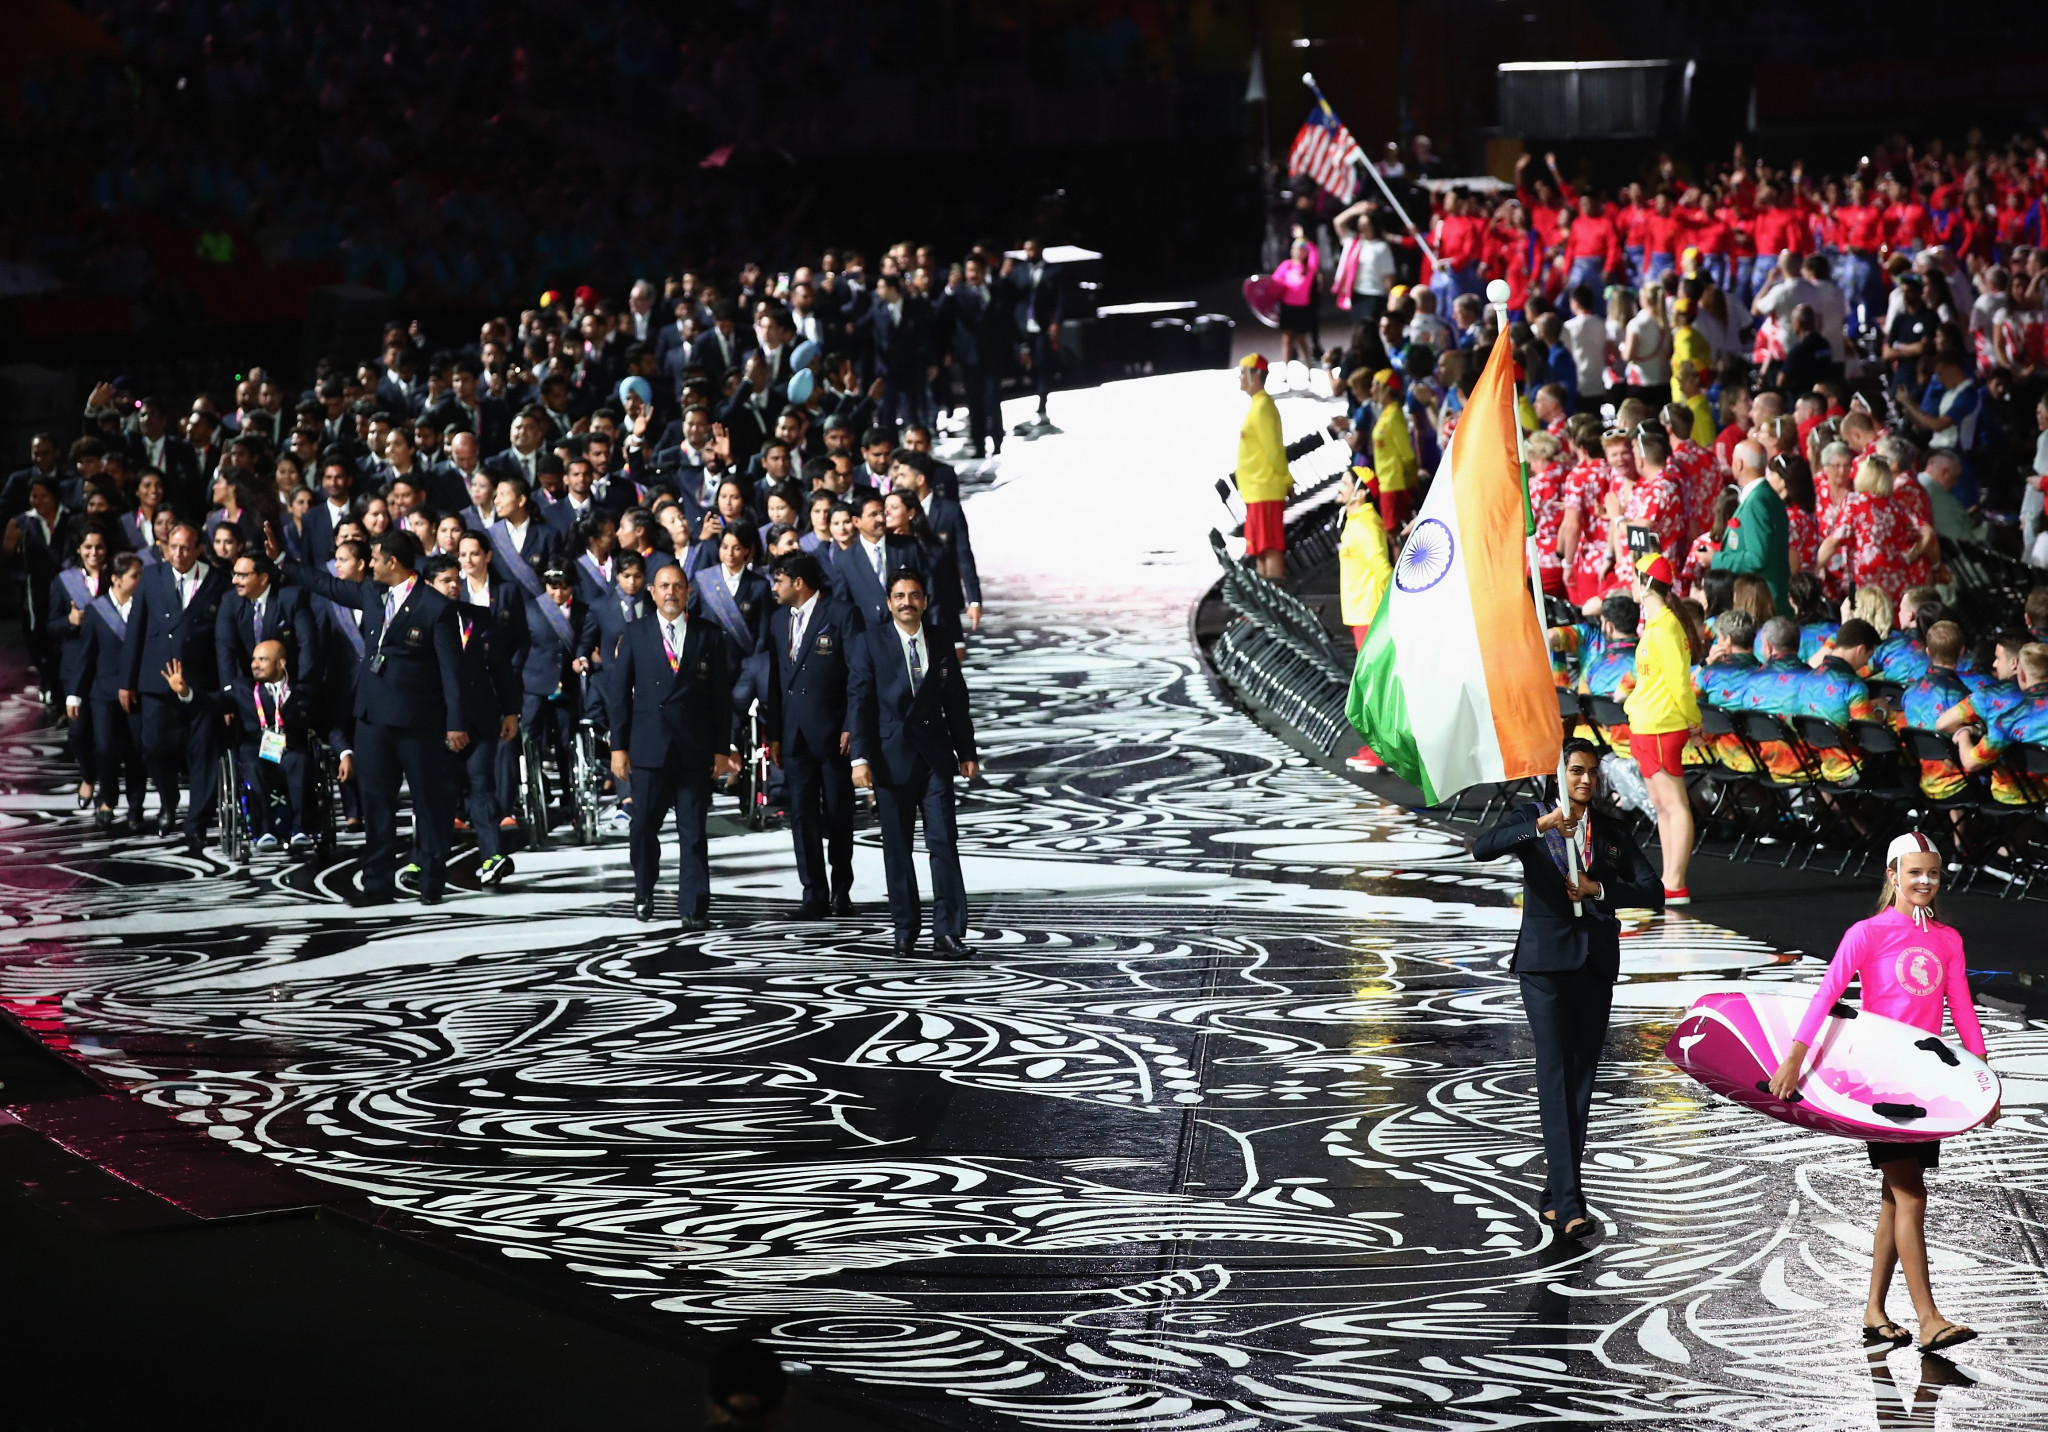 The Indian Olympic Association opted to give their competitors a unified dress code for the Opening Ceremony of the Gold Coast 2018 Commonwealth Games ©Getty Images